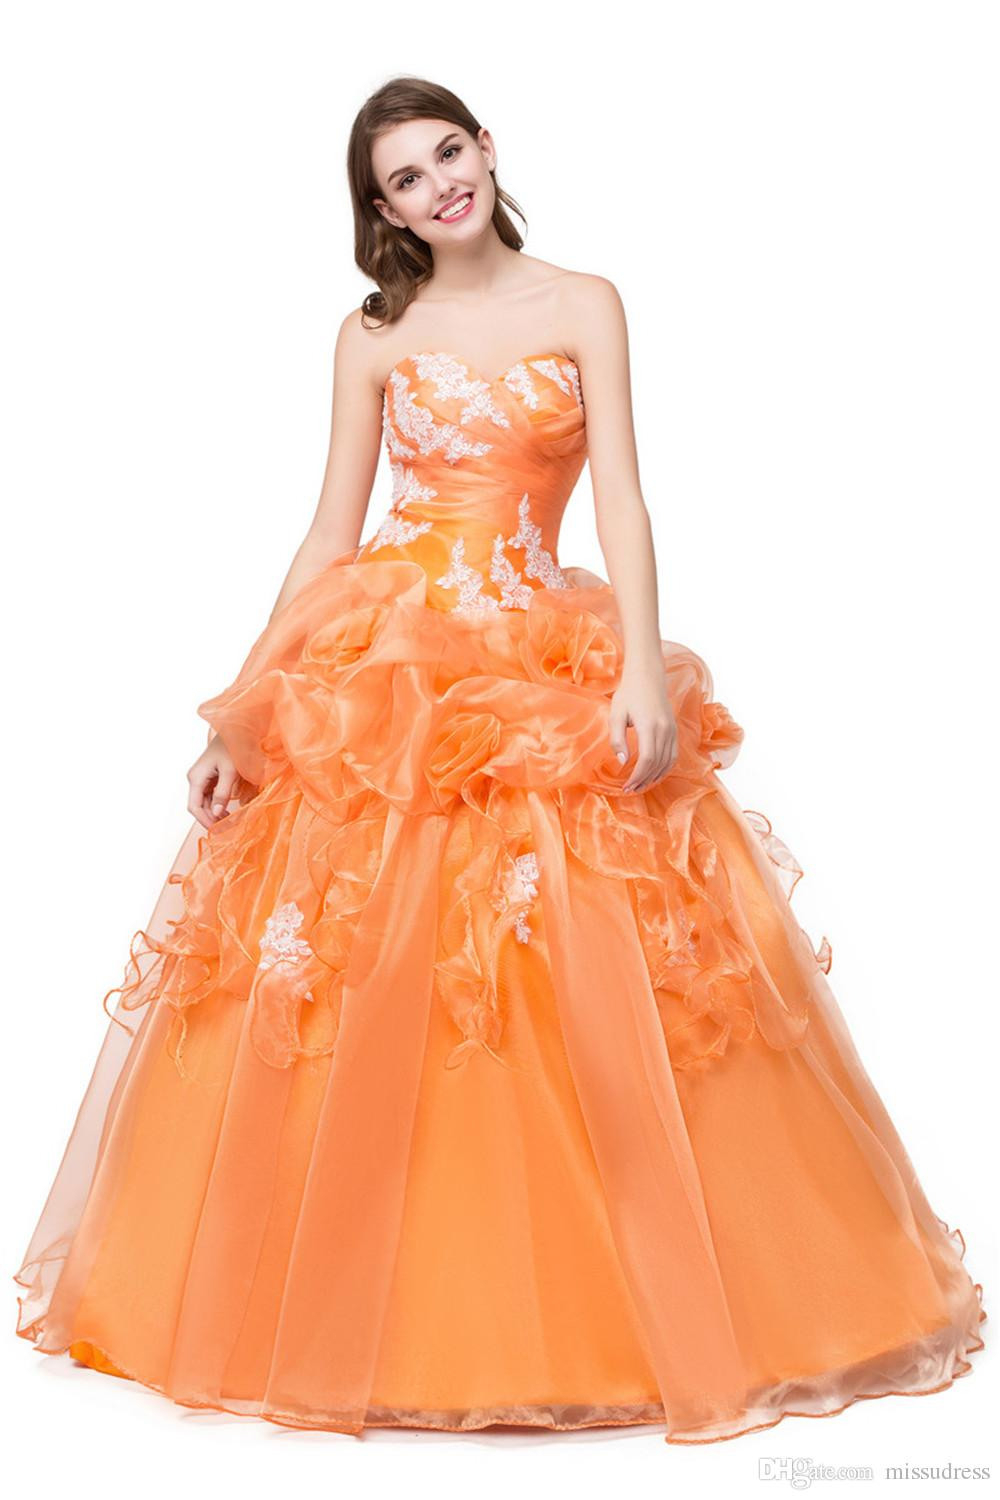 Abend Top Abendkleid Orange Ärmel17 Erstaunlich Abendkleid Orange Boutique